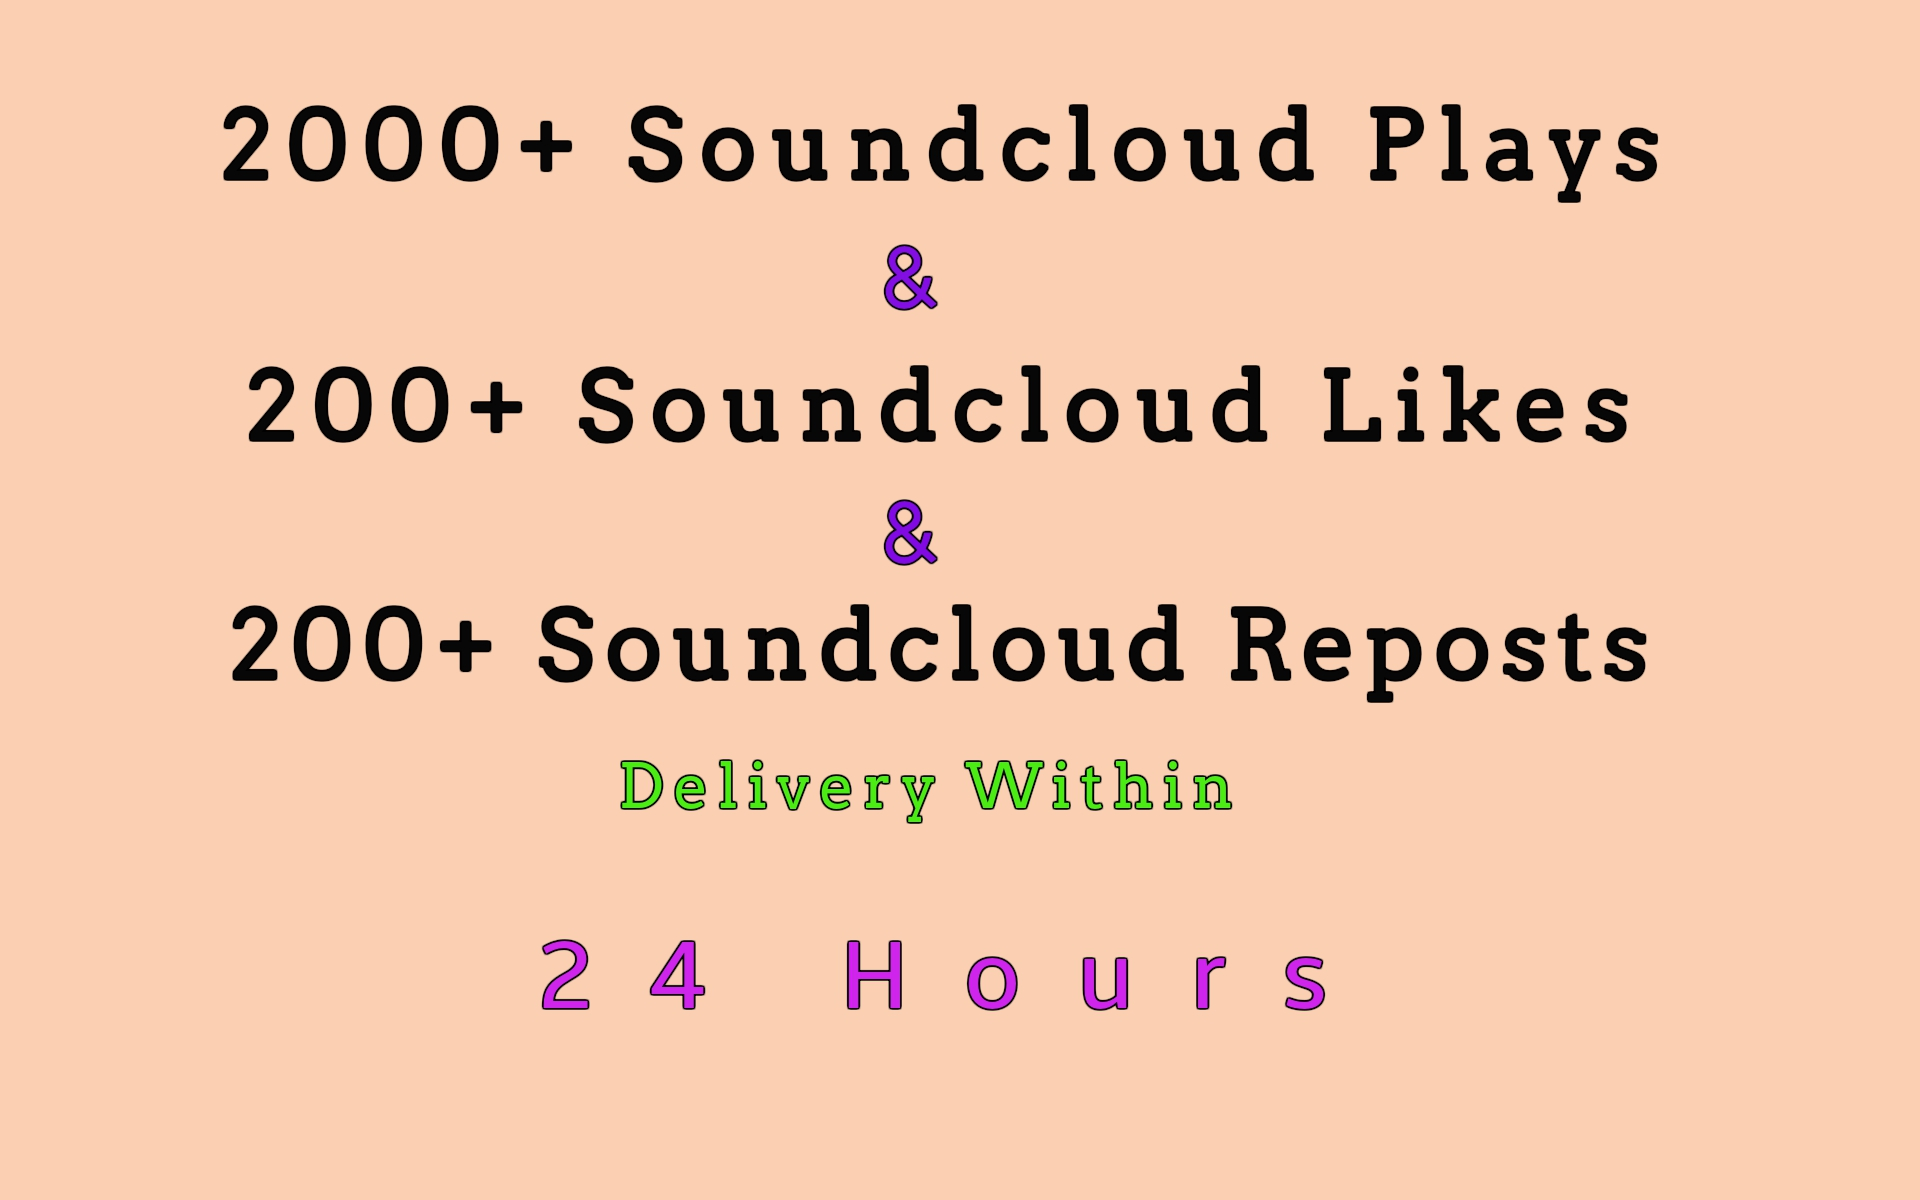 2000+ soundcloud plays and 200+ soundcloud likes and 200+ soundcloud reposts